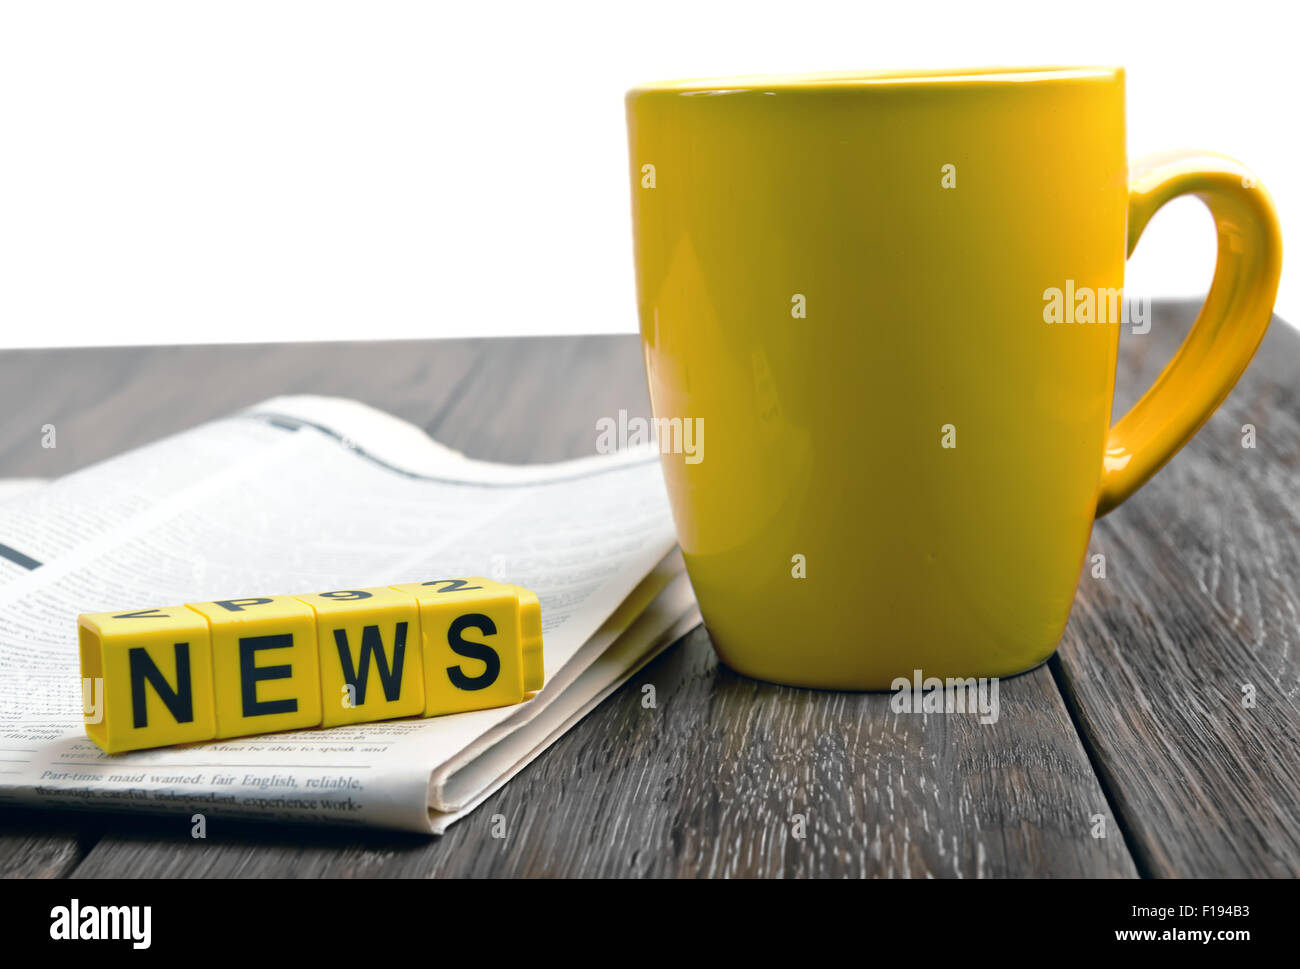 newspaper and coffee cup on wooden table - Stock Image